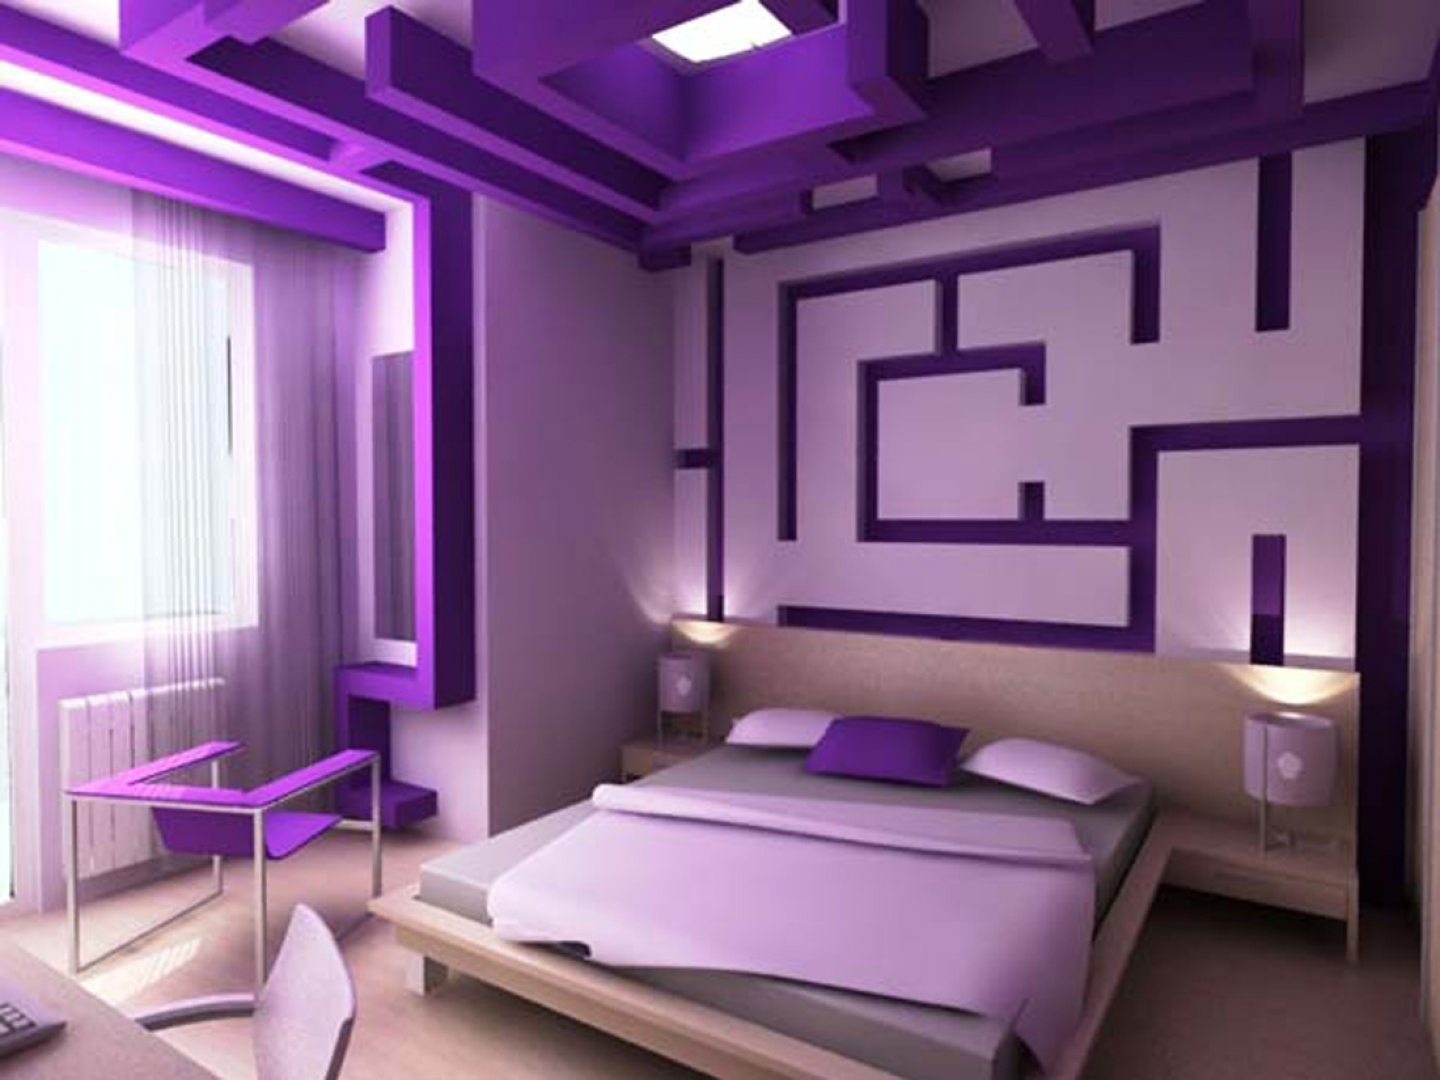 interior design bedroom colors - Teenage Interior Design Bedroom